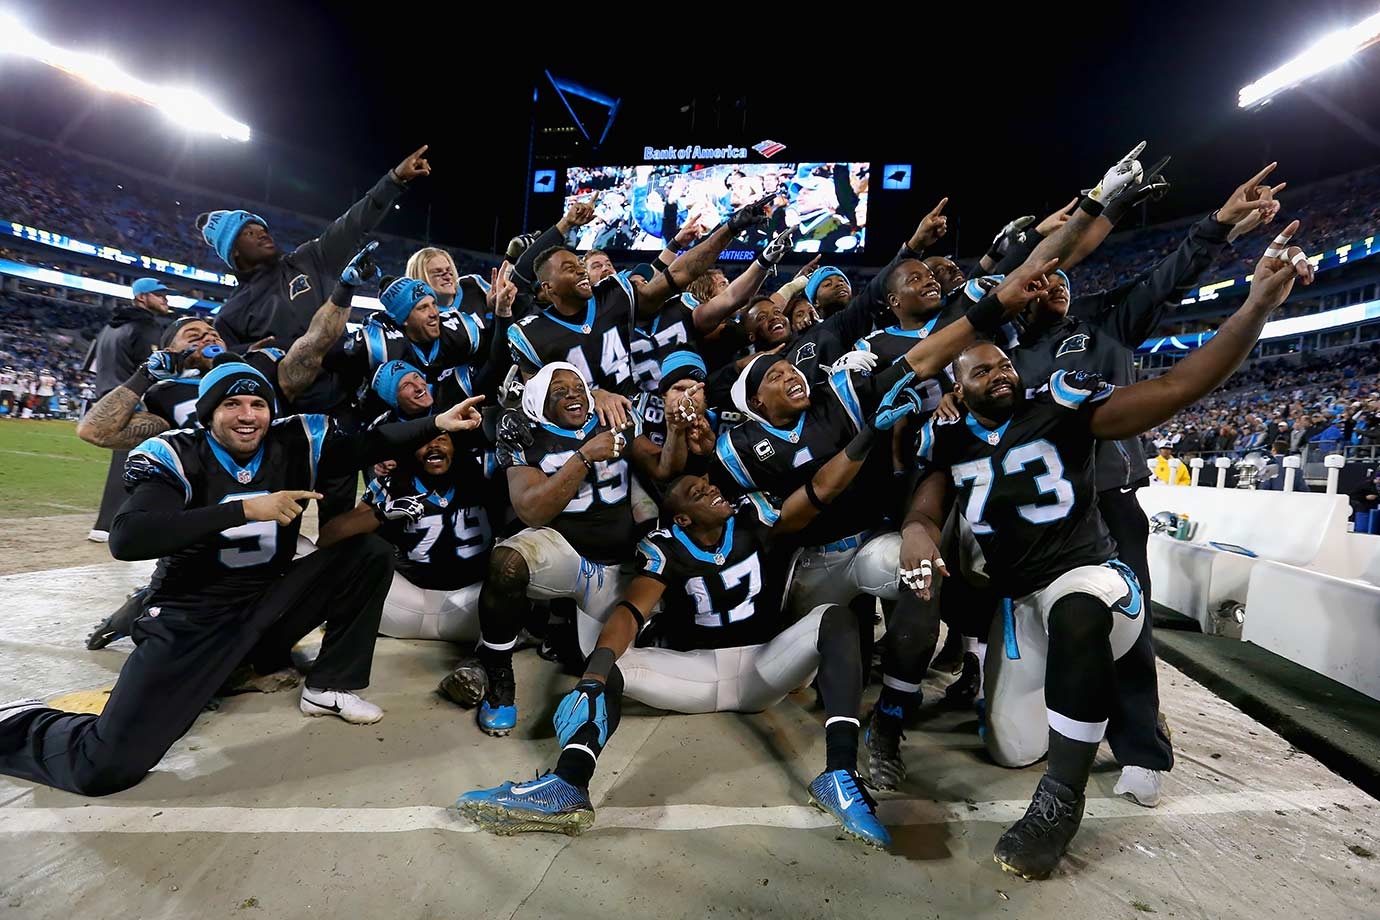 With the thought of an undefeated season gone, Carolina took care of business in the last game of the season, beating the Buccaneers 38-10. Newton had two touchdowns through the air and two on the ground as the Panthers breezed, clinching the first-seed in the playoffs.